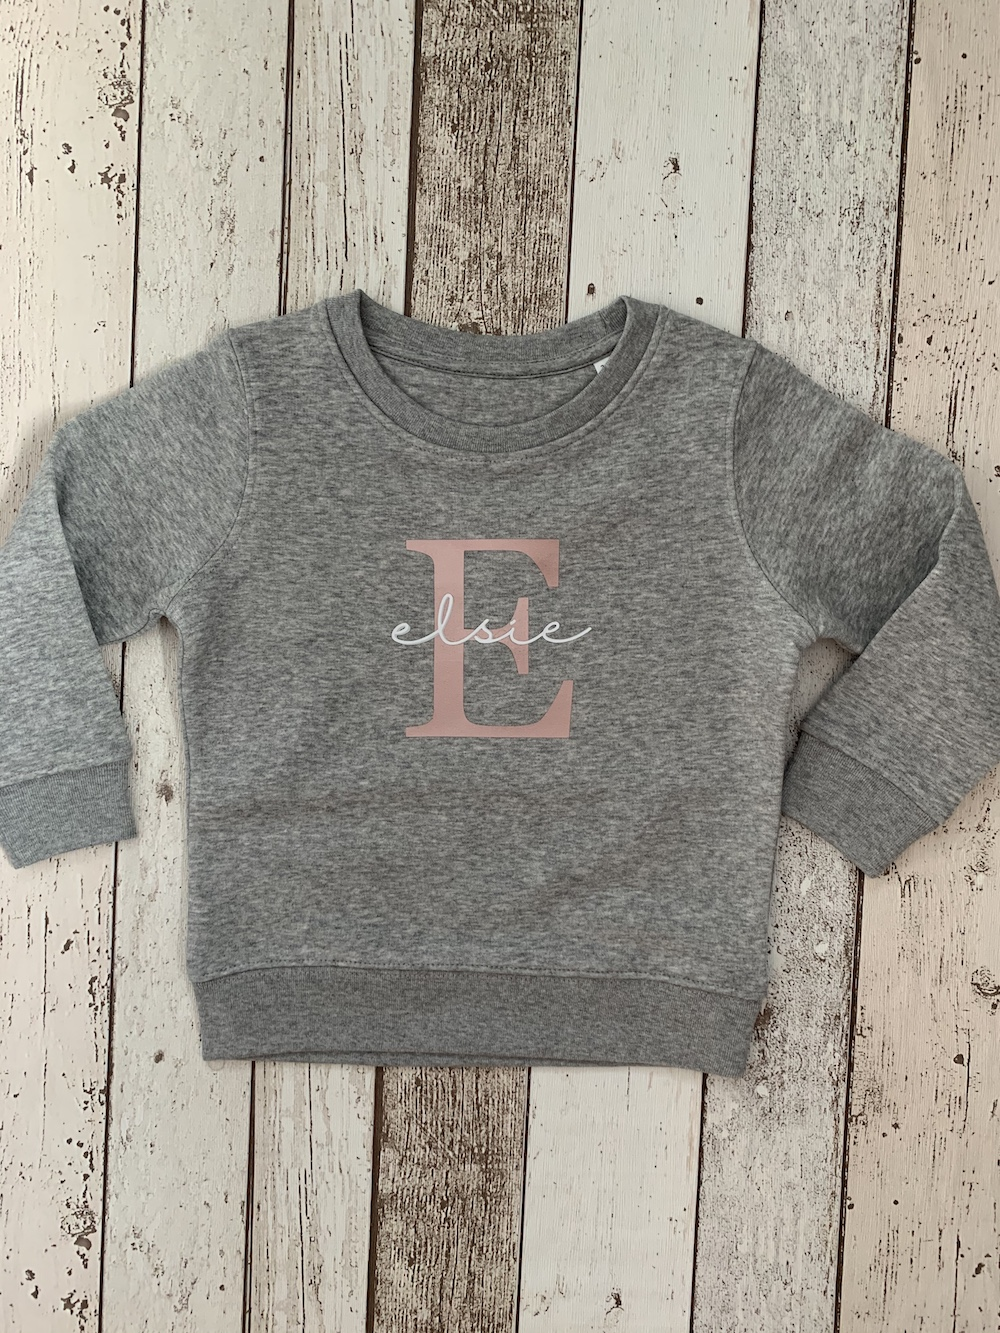 Pretty Initial Grey Sweatshirt – Children's Size